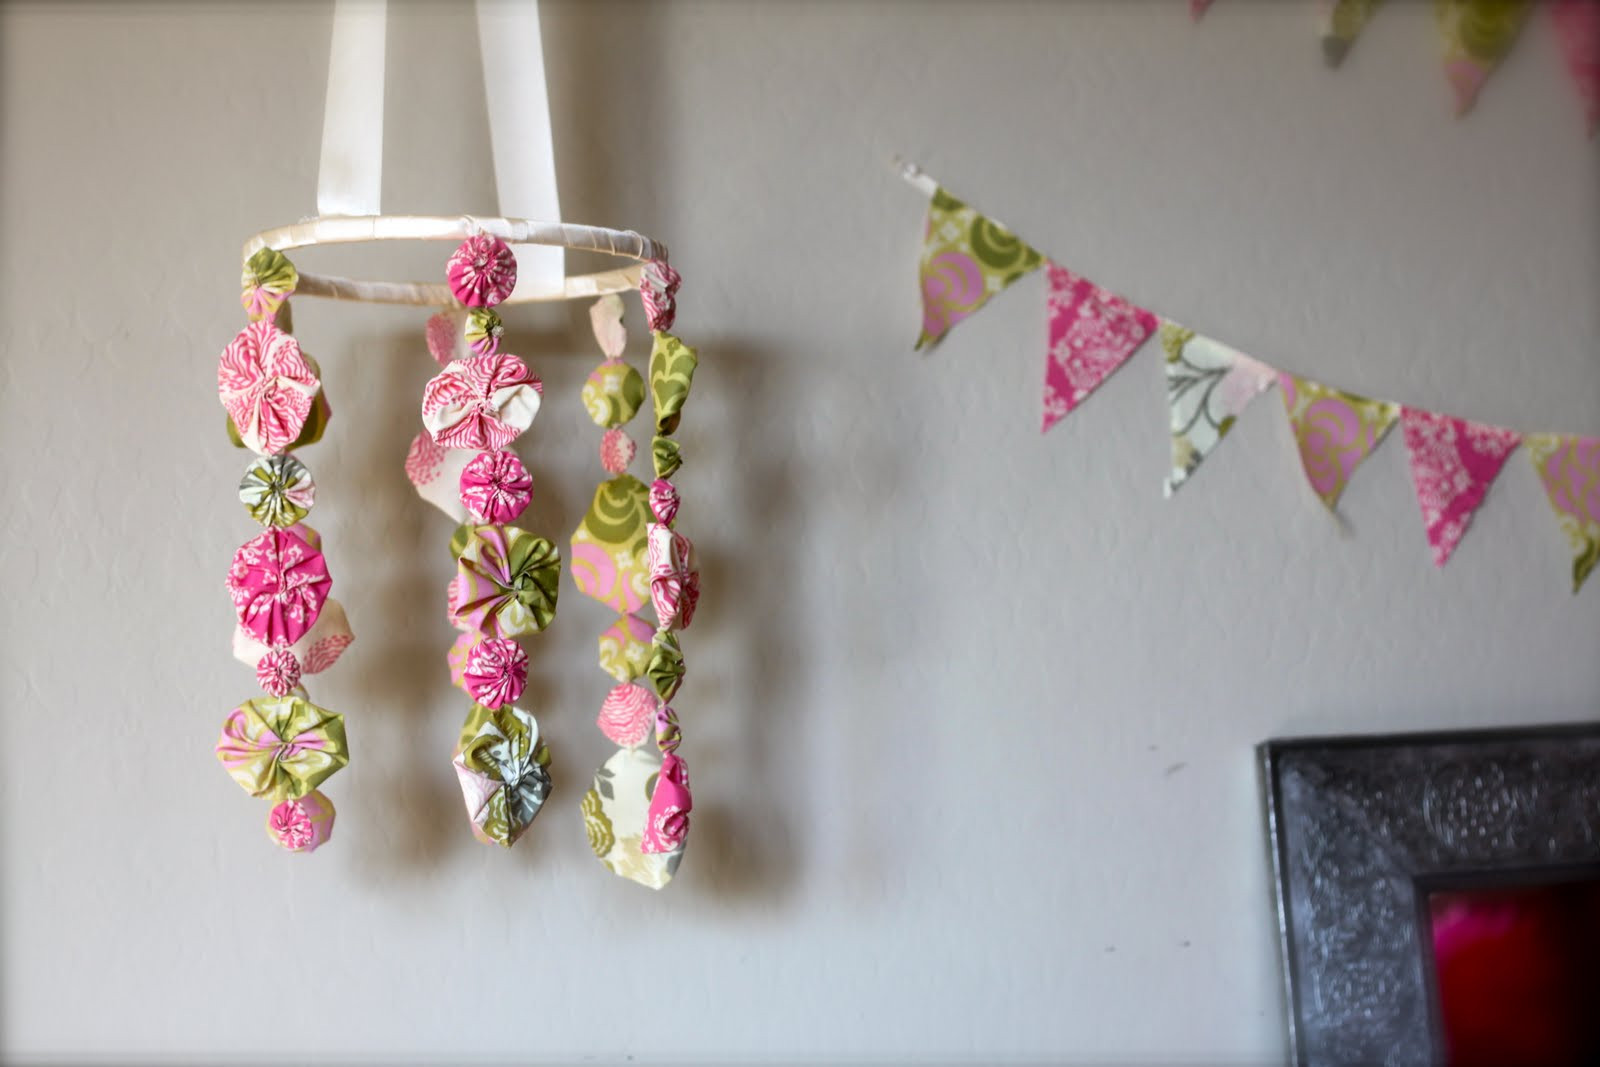 Best ideas about DIY Baby Girl Gift . Save or Pin 25 DIY Baby Shower Gifts for the Little Girl on the Way Now.